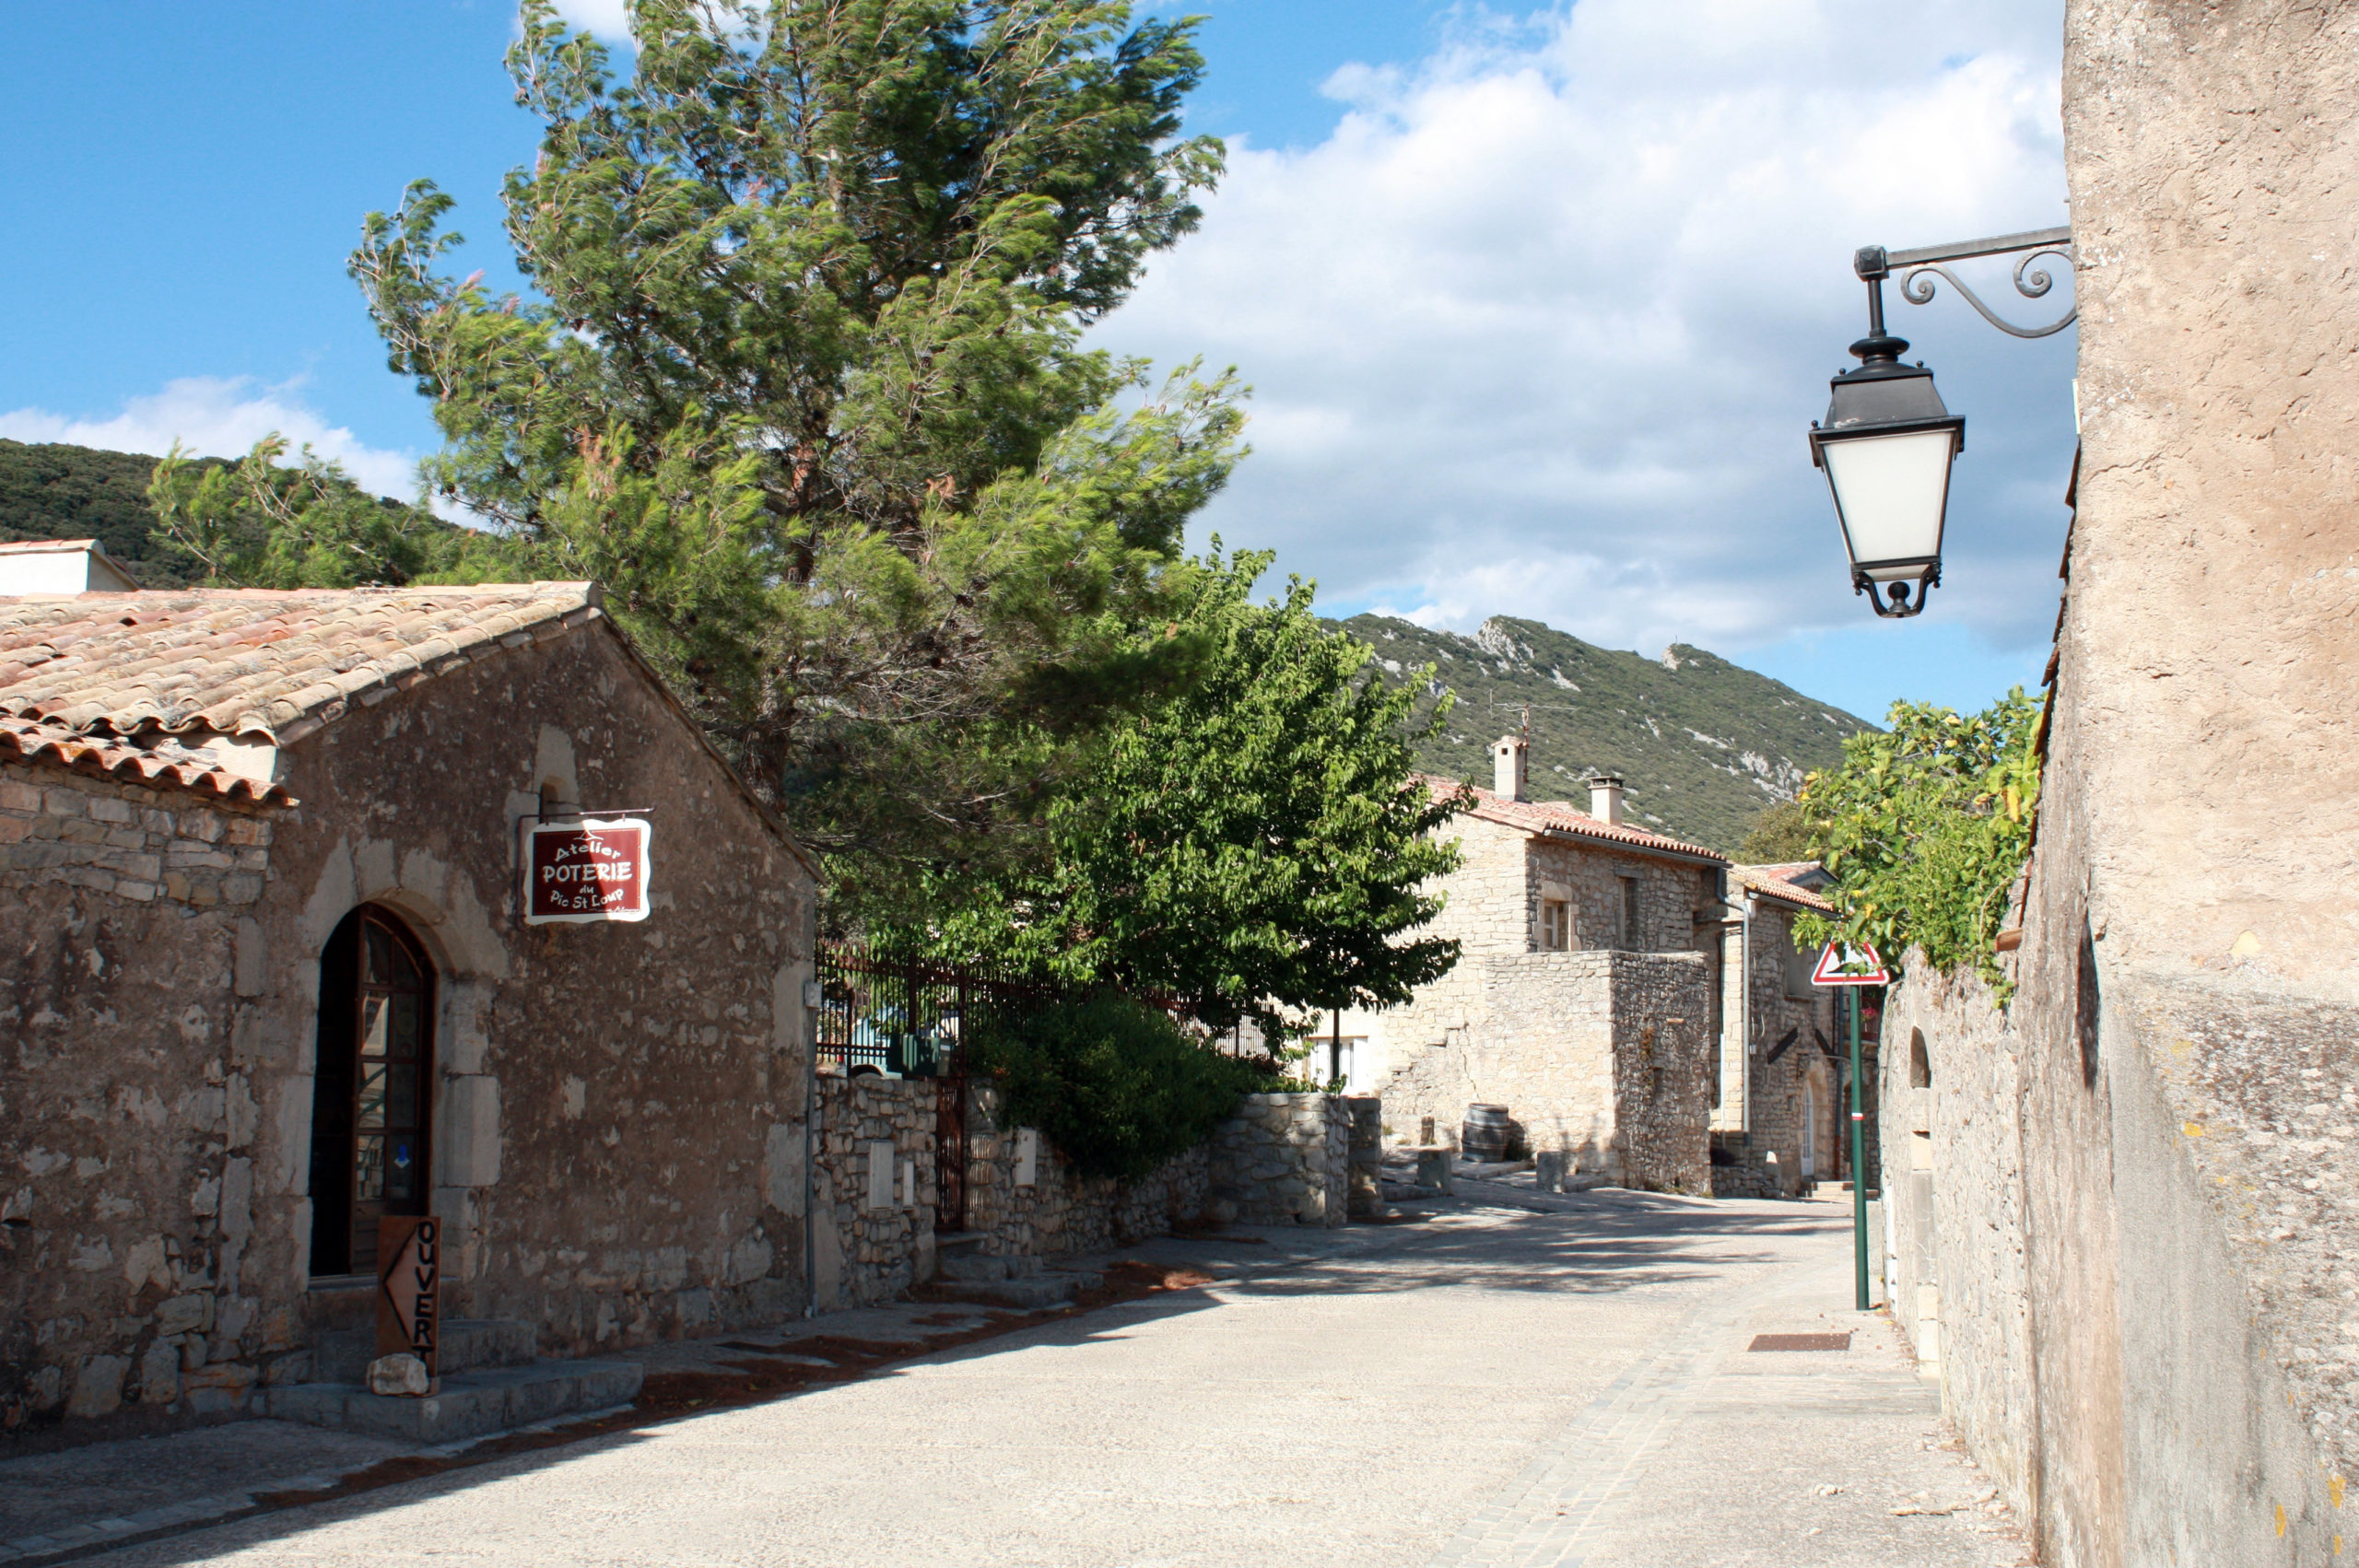 Village de Cazevieille. Photo : Christophe Colrat